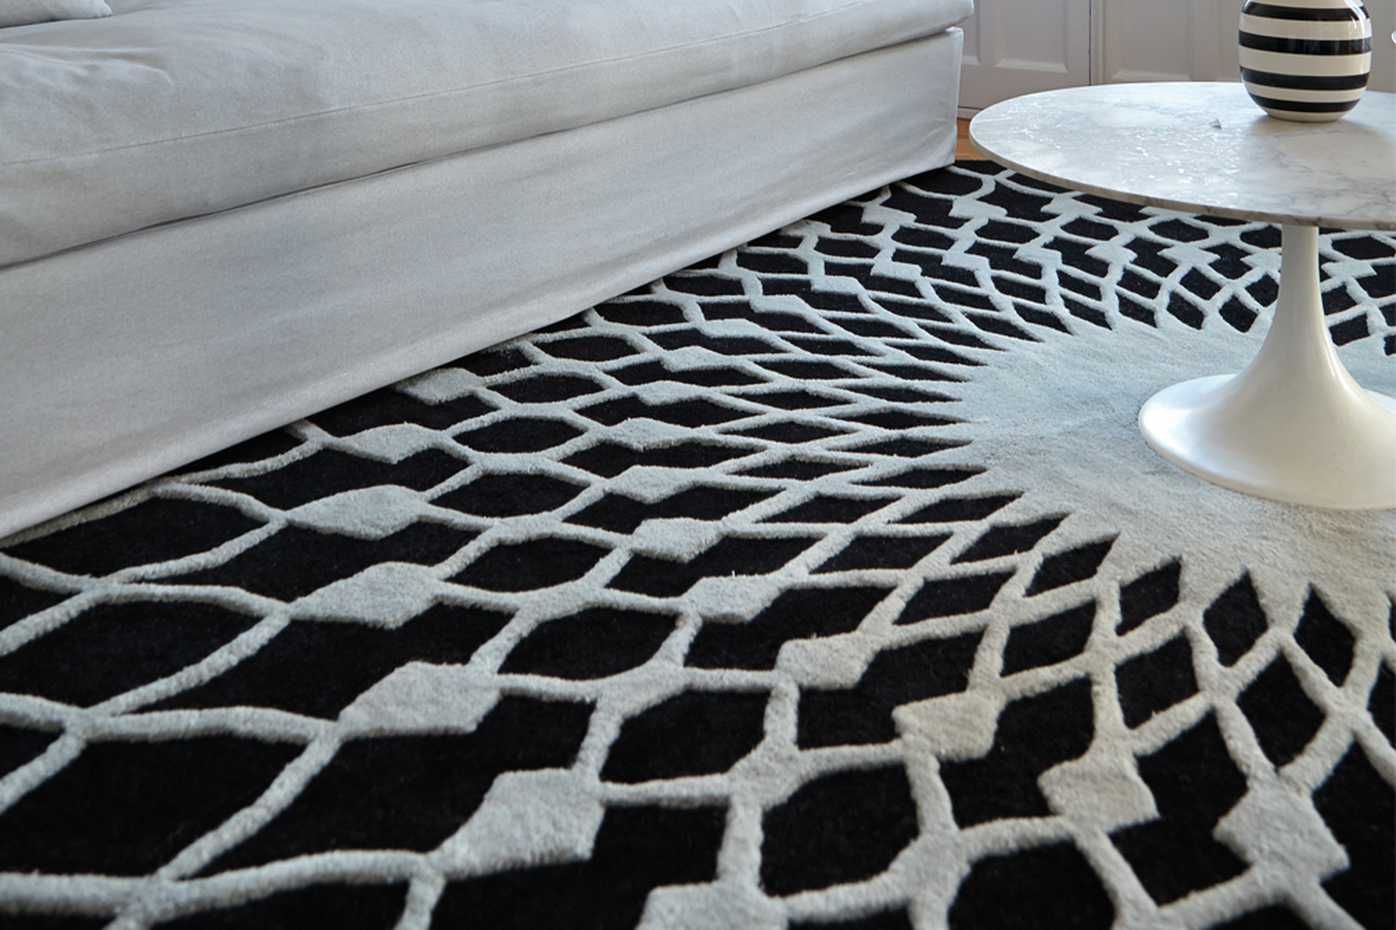 Trama by Gan Rugs product image 1